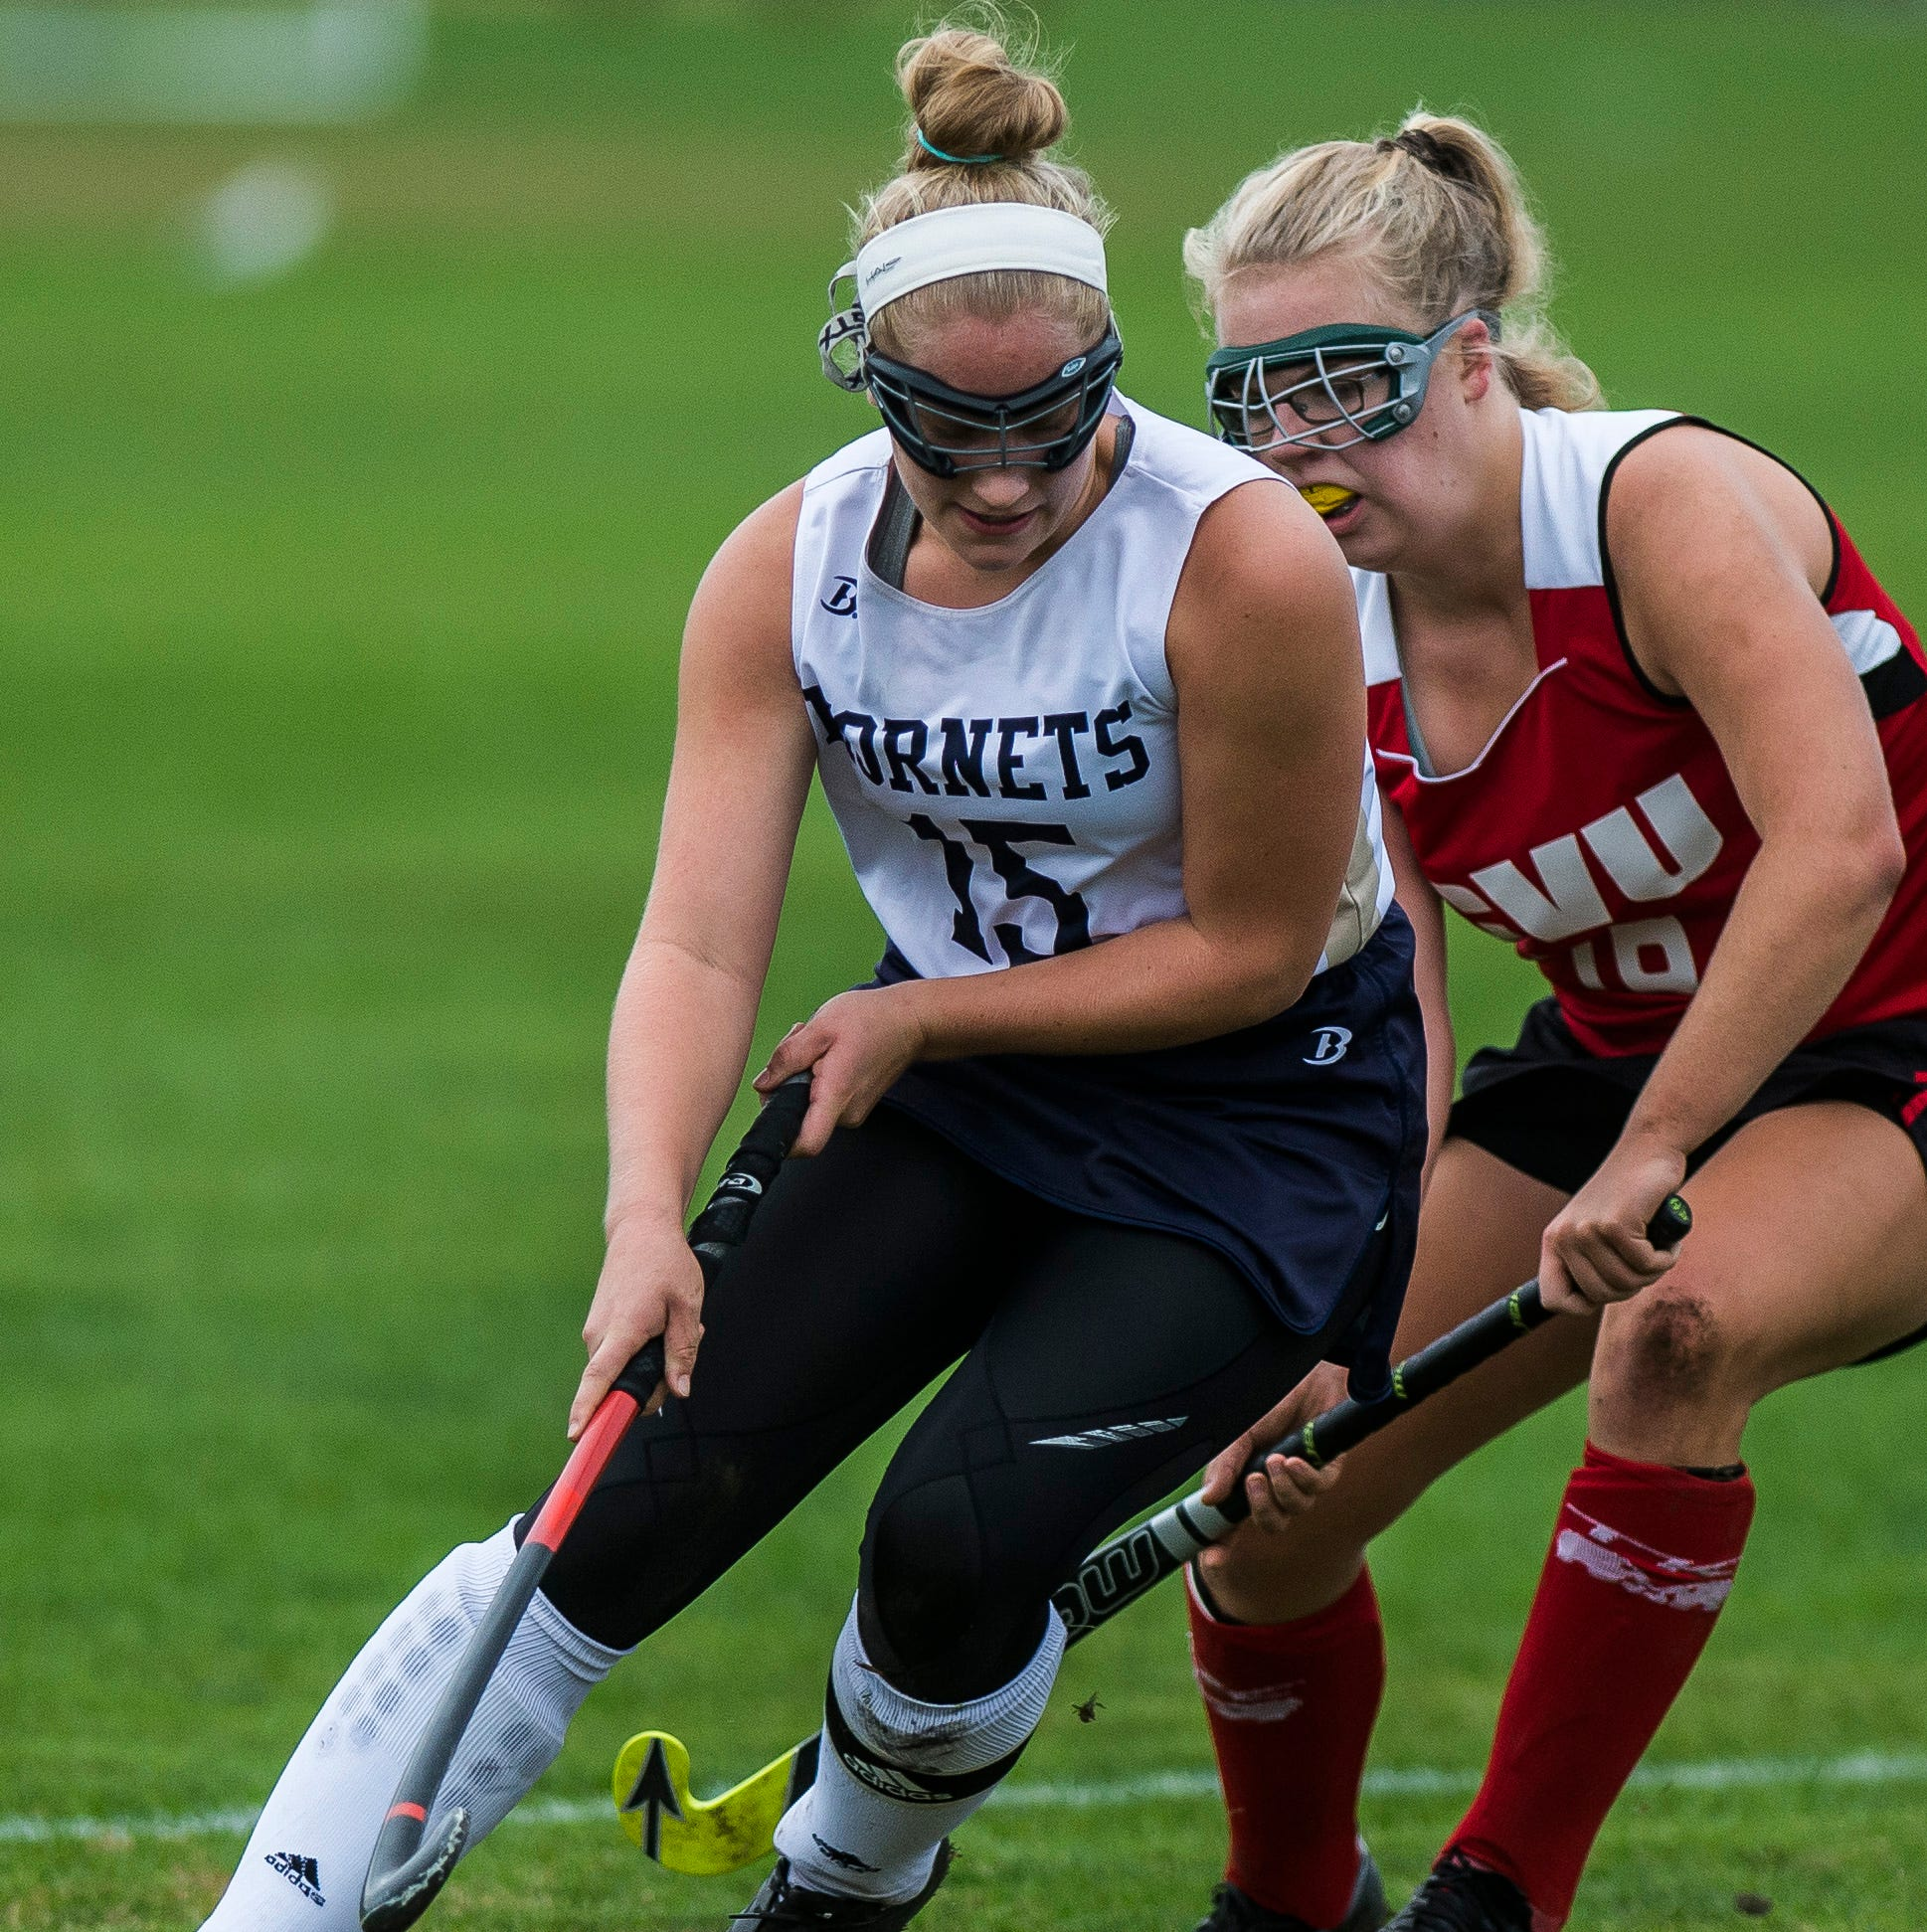 Vermont high school highlights: Morin, Essex field hockey edge CVU